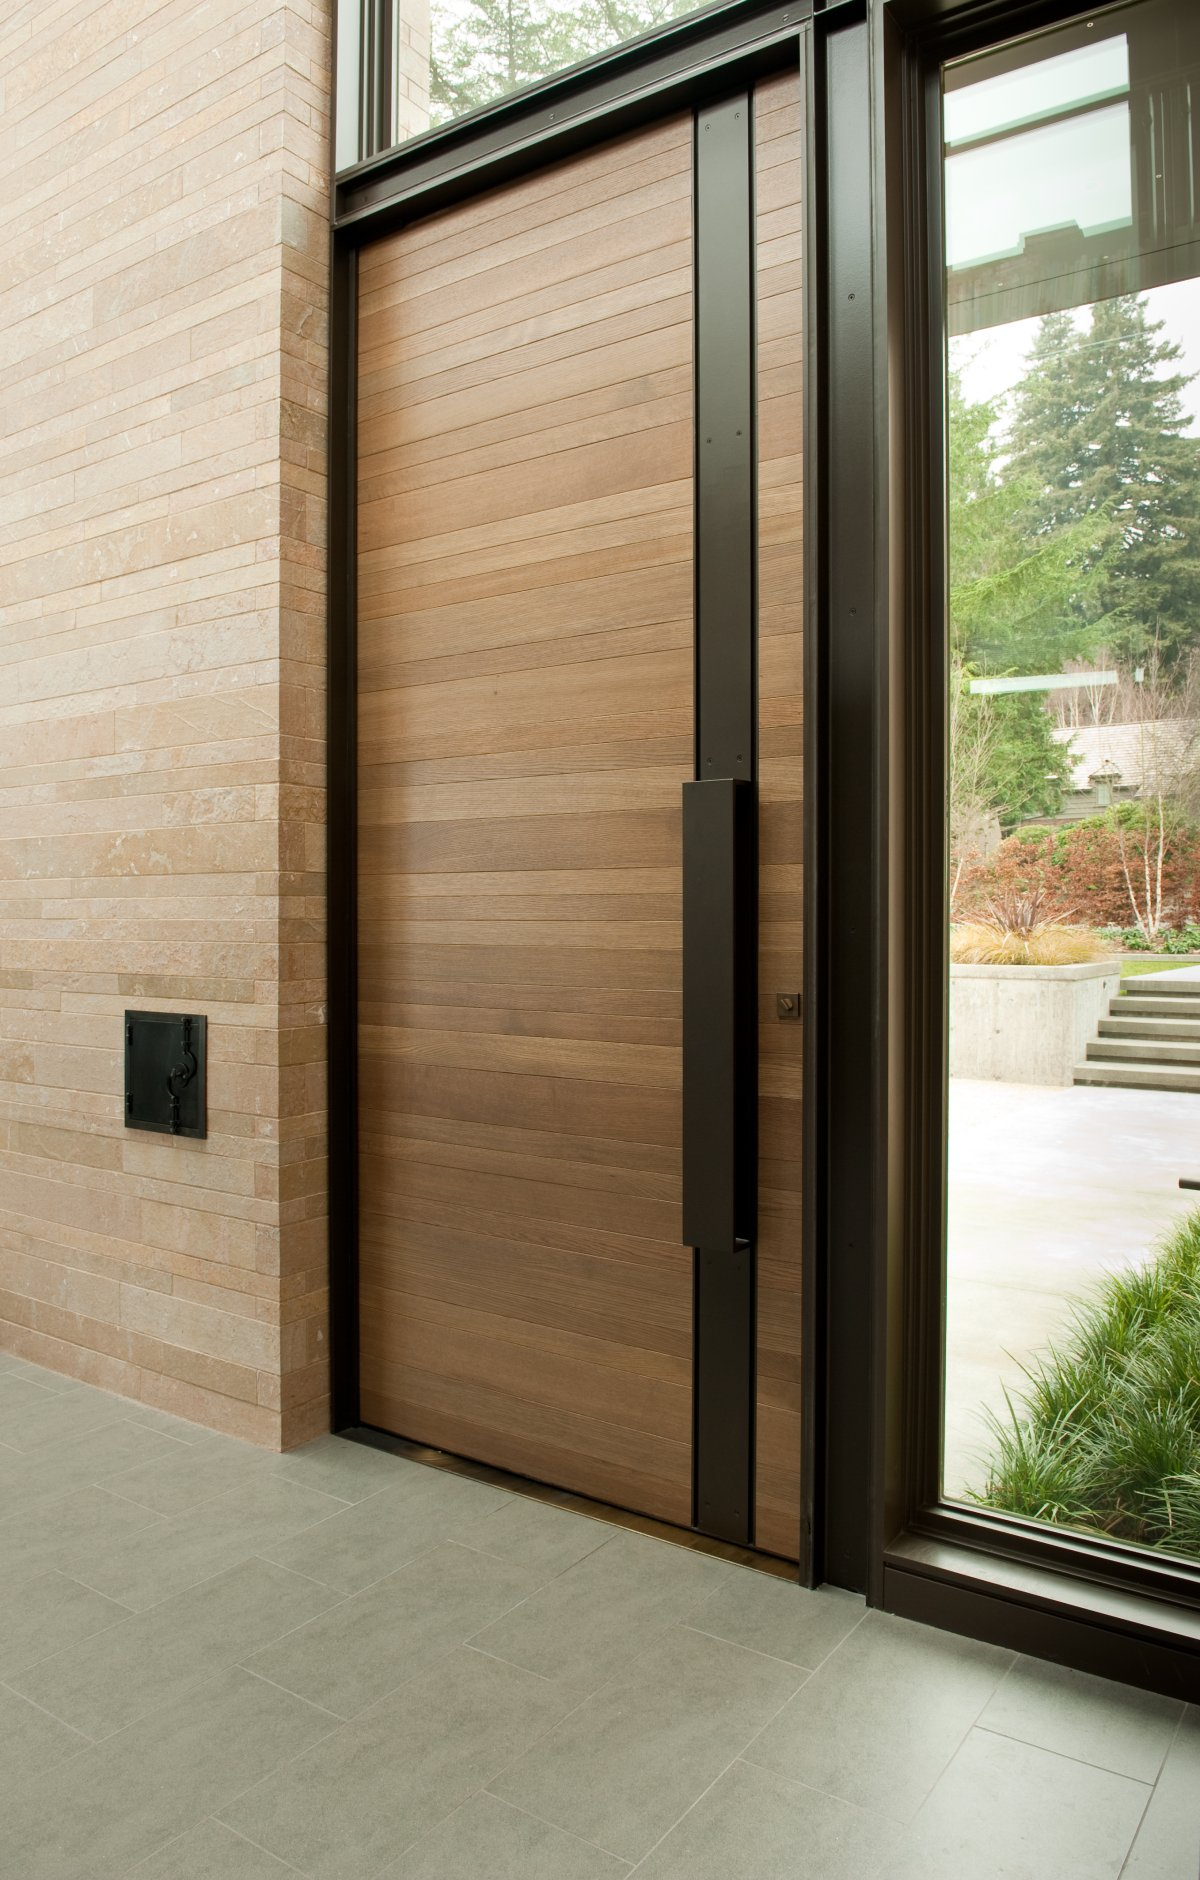 Stunning Design Of The Grey Tile Added With Wooden Front Door Ideas With Glass Windows